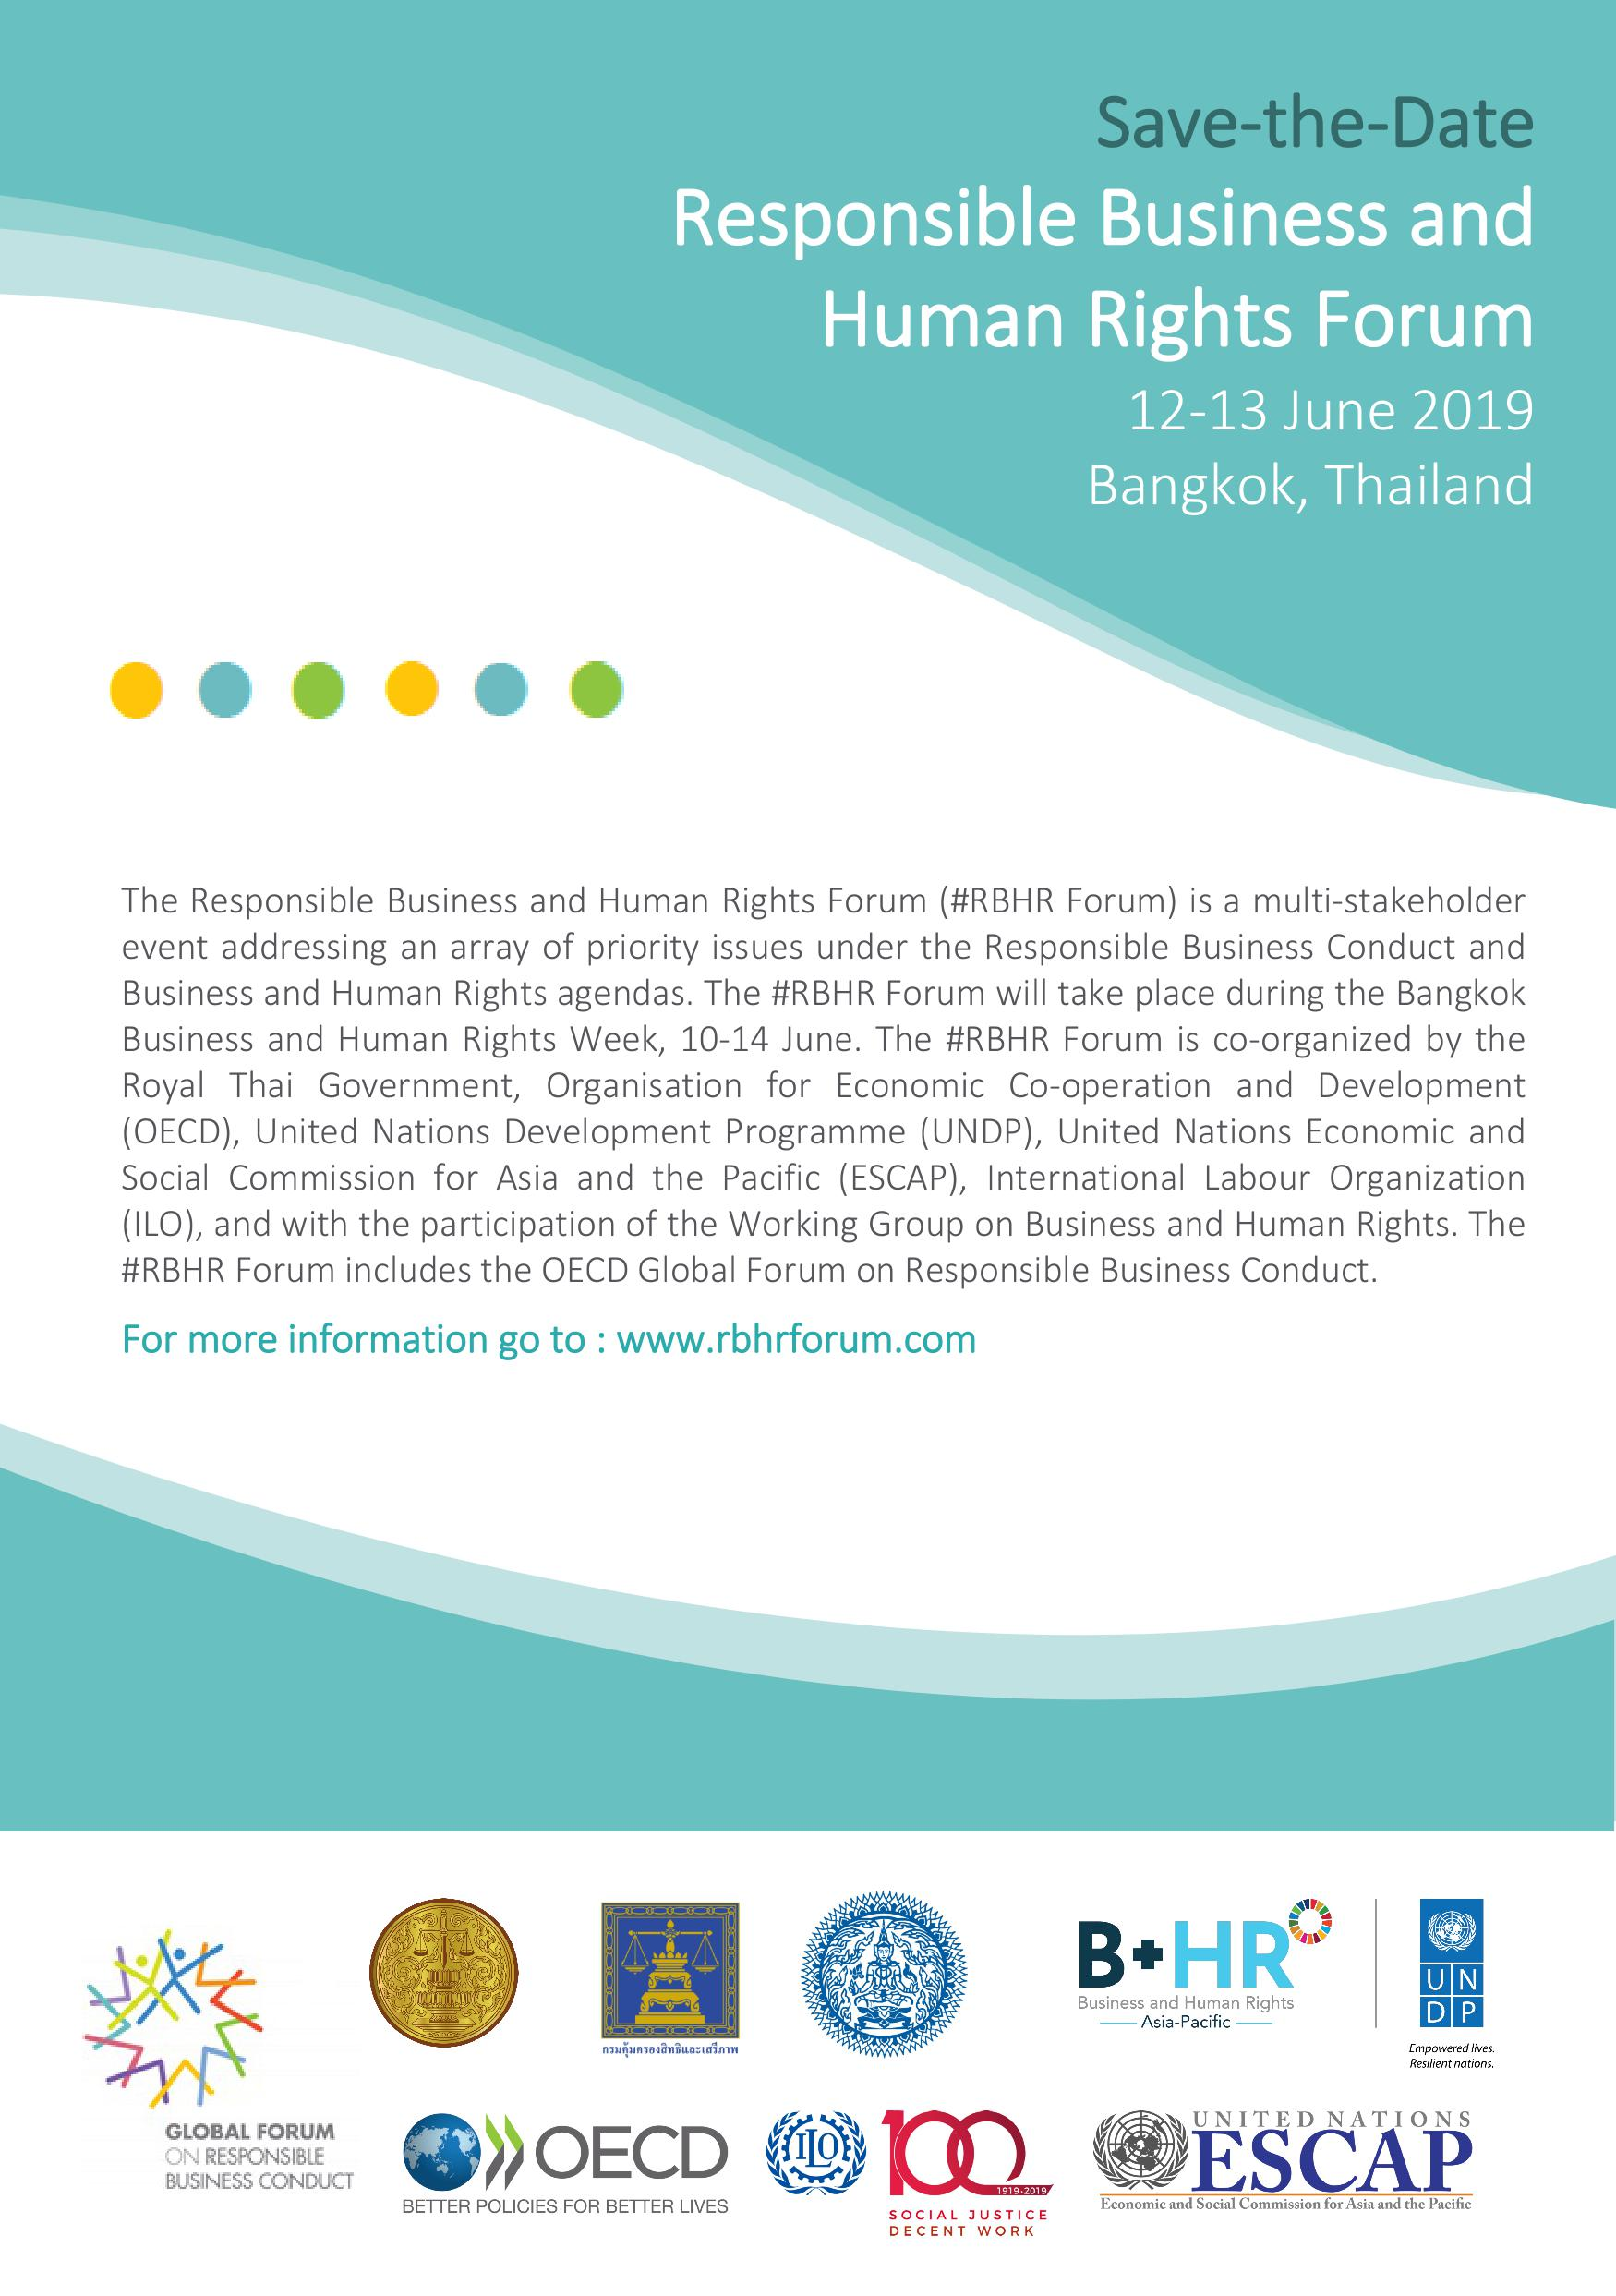 Responsible Supply Chains in Asia: Responsible Business and